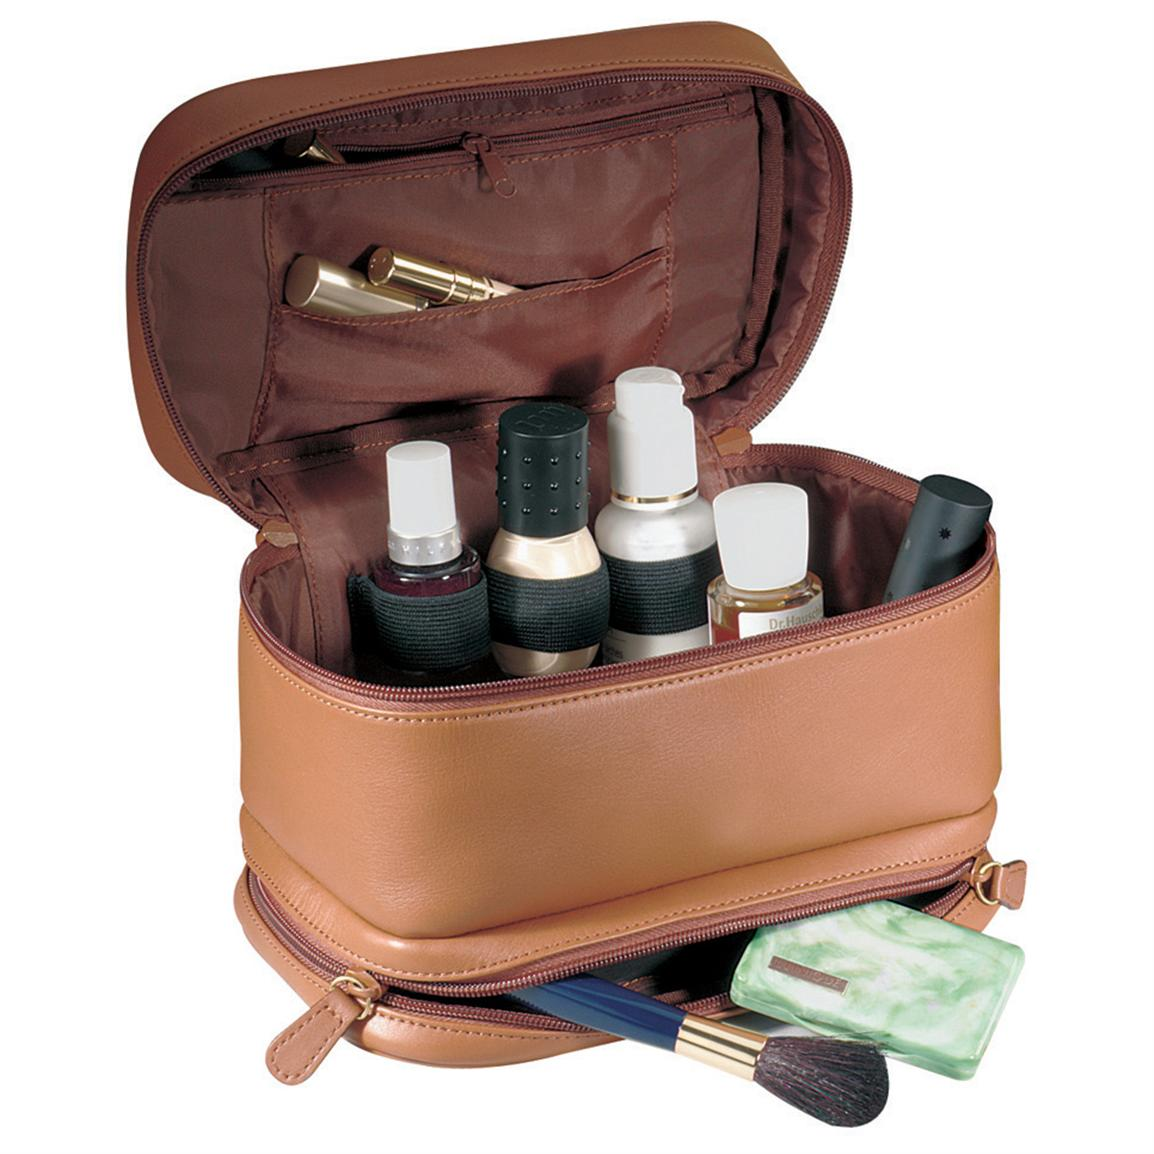 Royce Leather Women's Cosmetic Travel Case, Tan